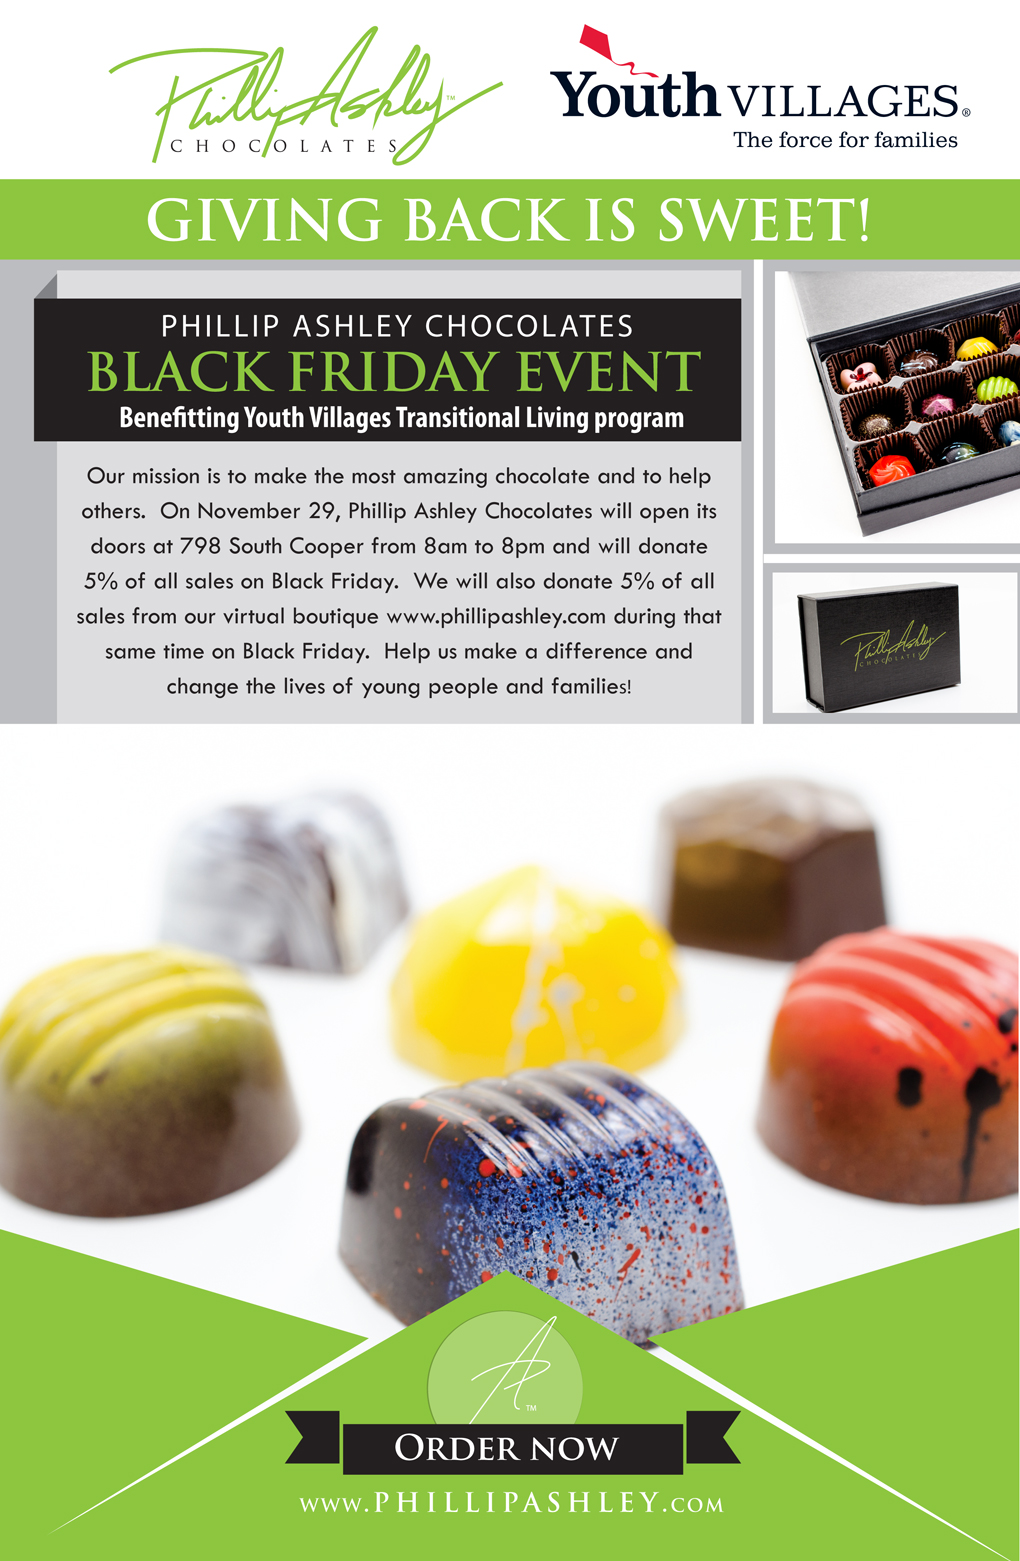 Phillip Ashley Chocolates Offers Sweet Black Friday Deal Benefiting Youth Villages Youth Villages News Success Stories